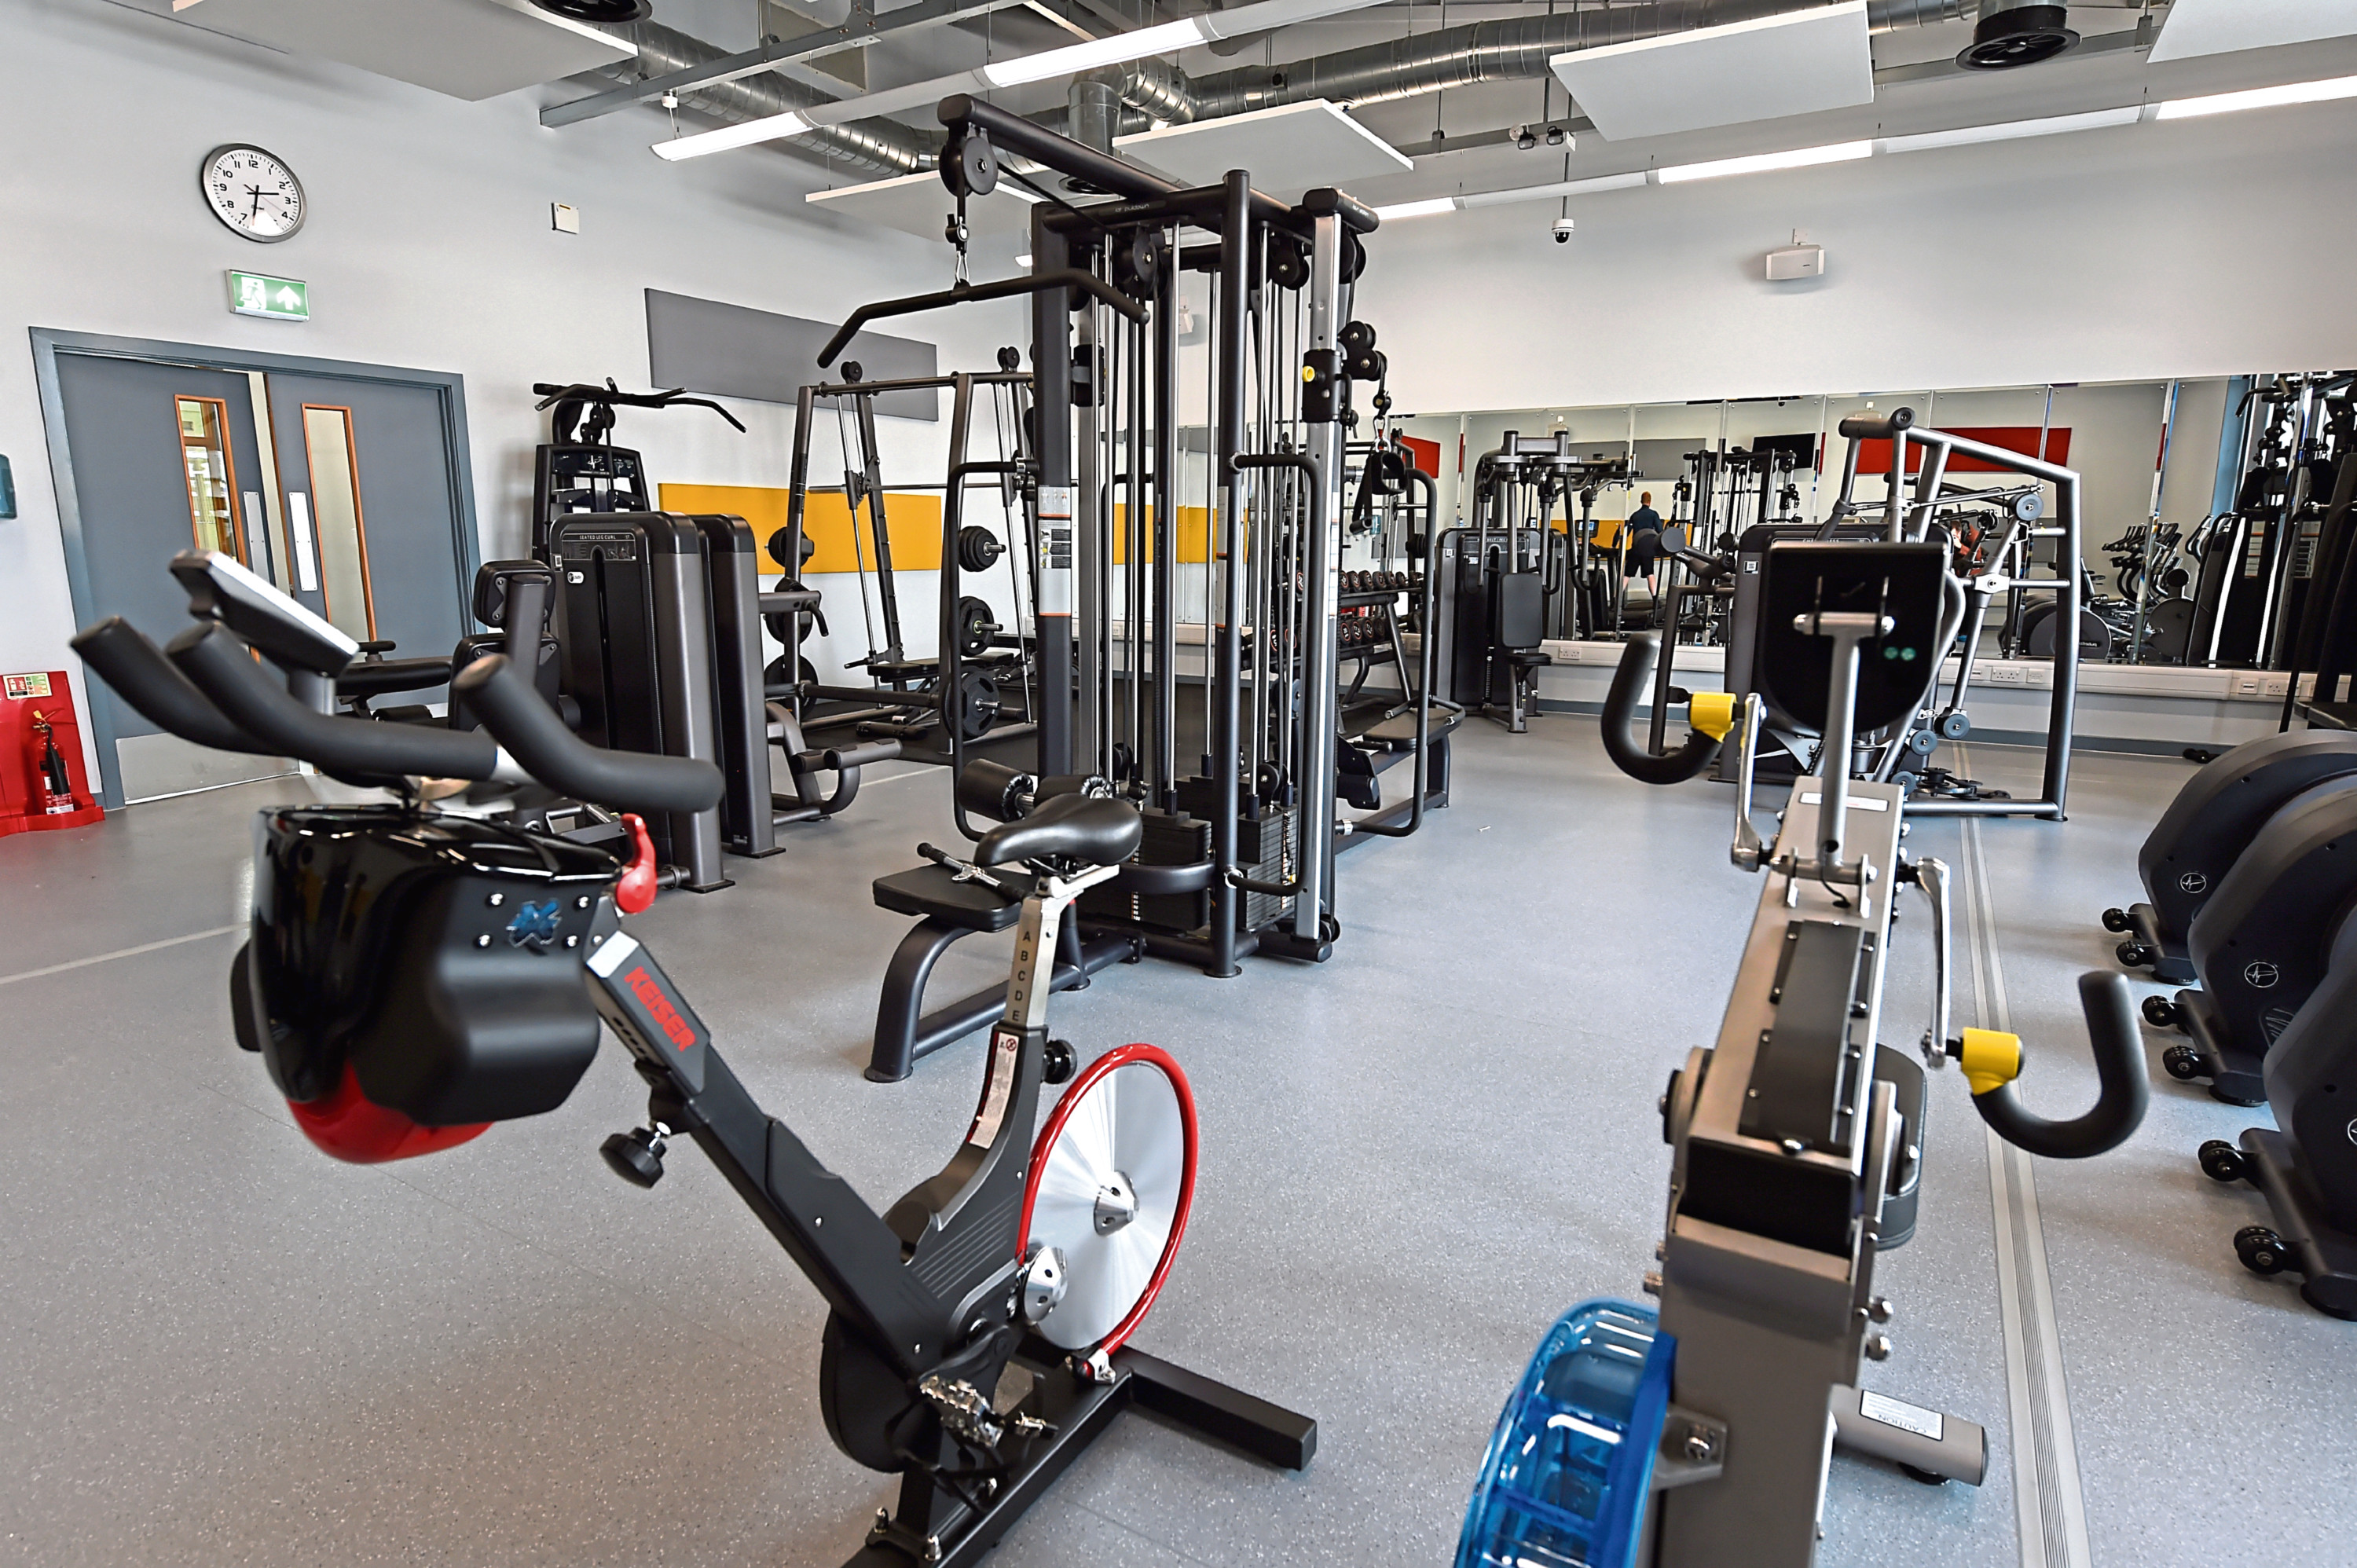 The new Banchory Sports Centre